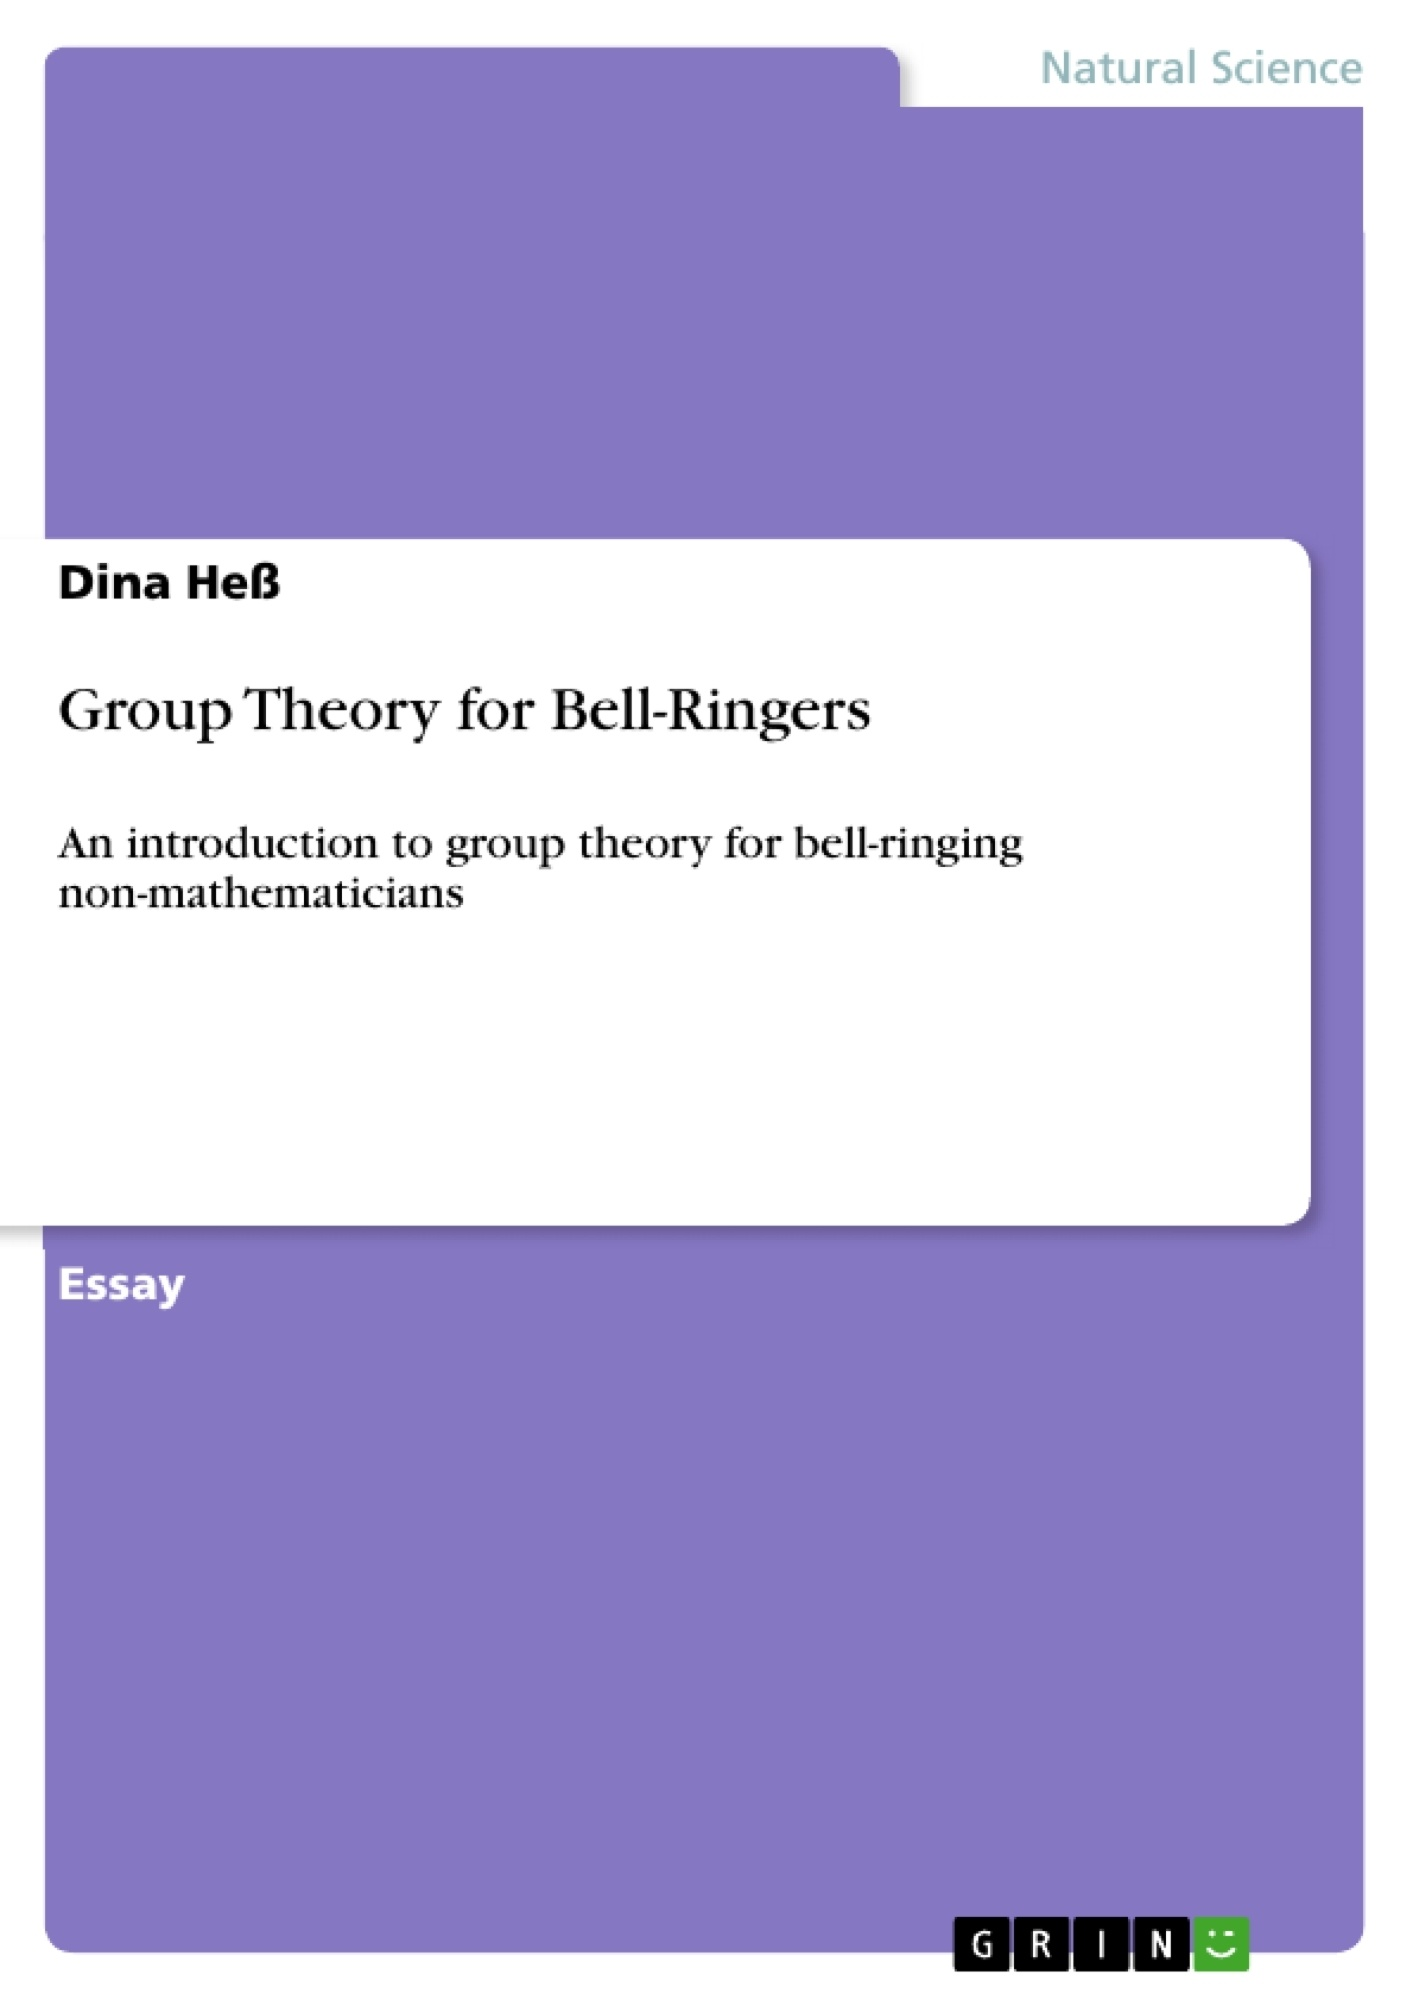 Title: Group Theory for Bell-Ringers